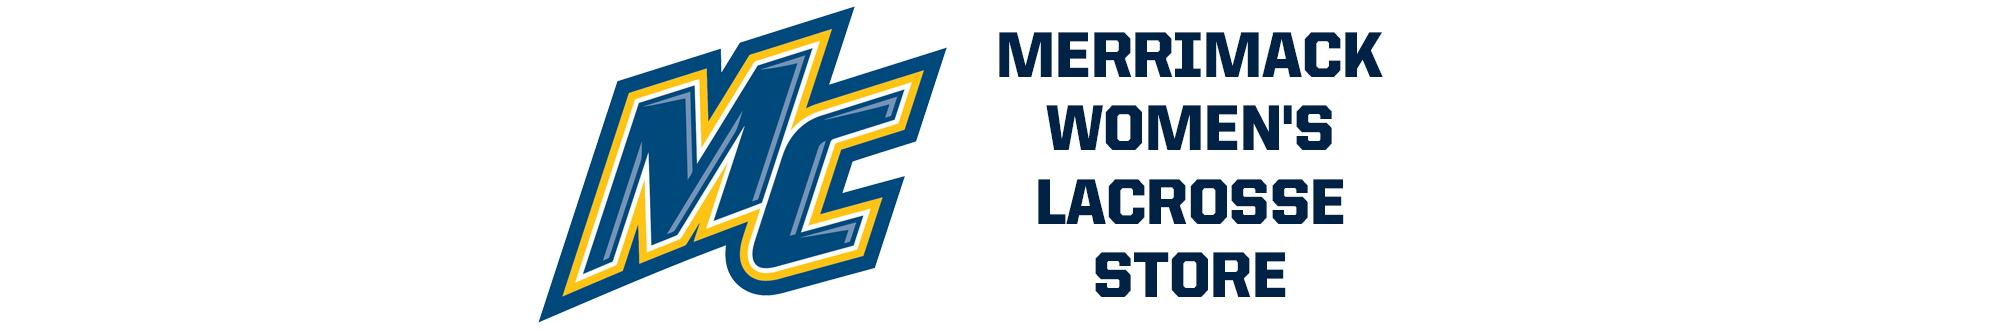 merrimack-womens-lax-equipment-store